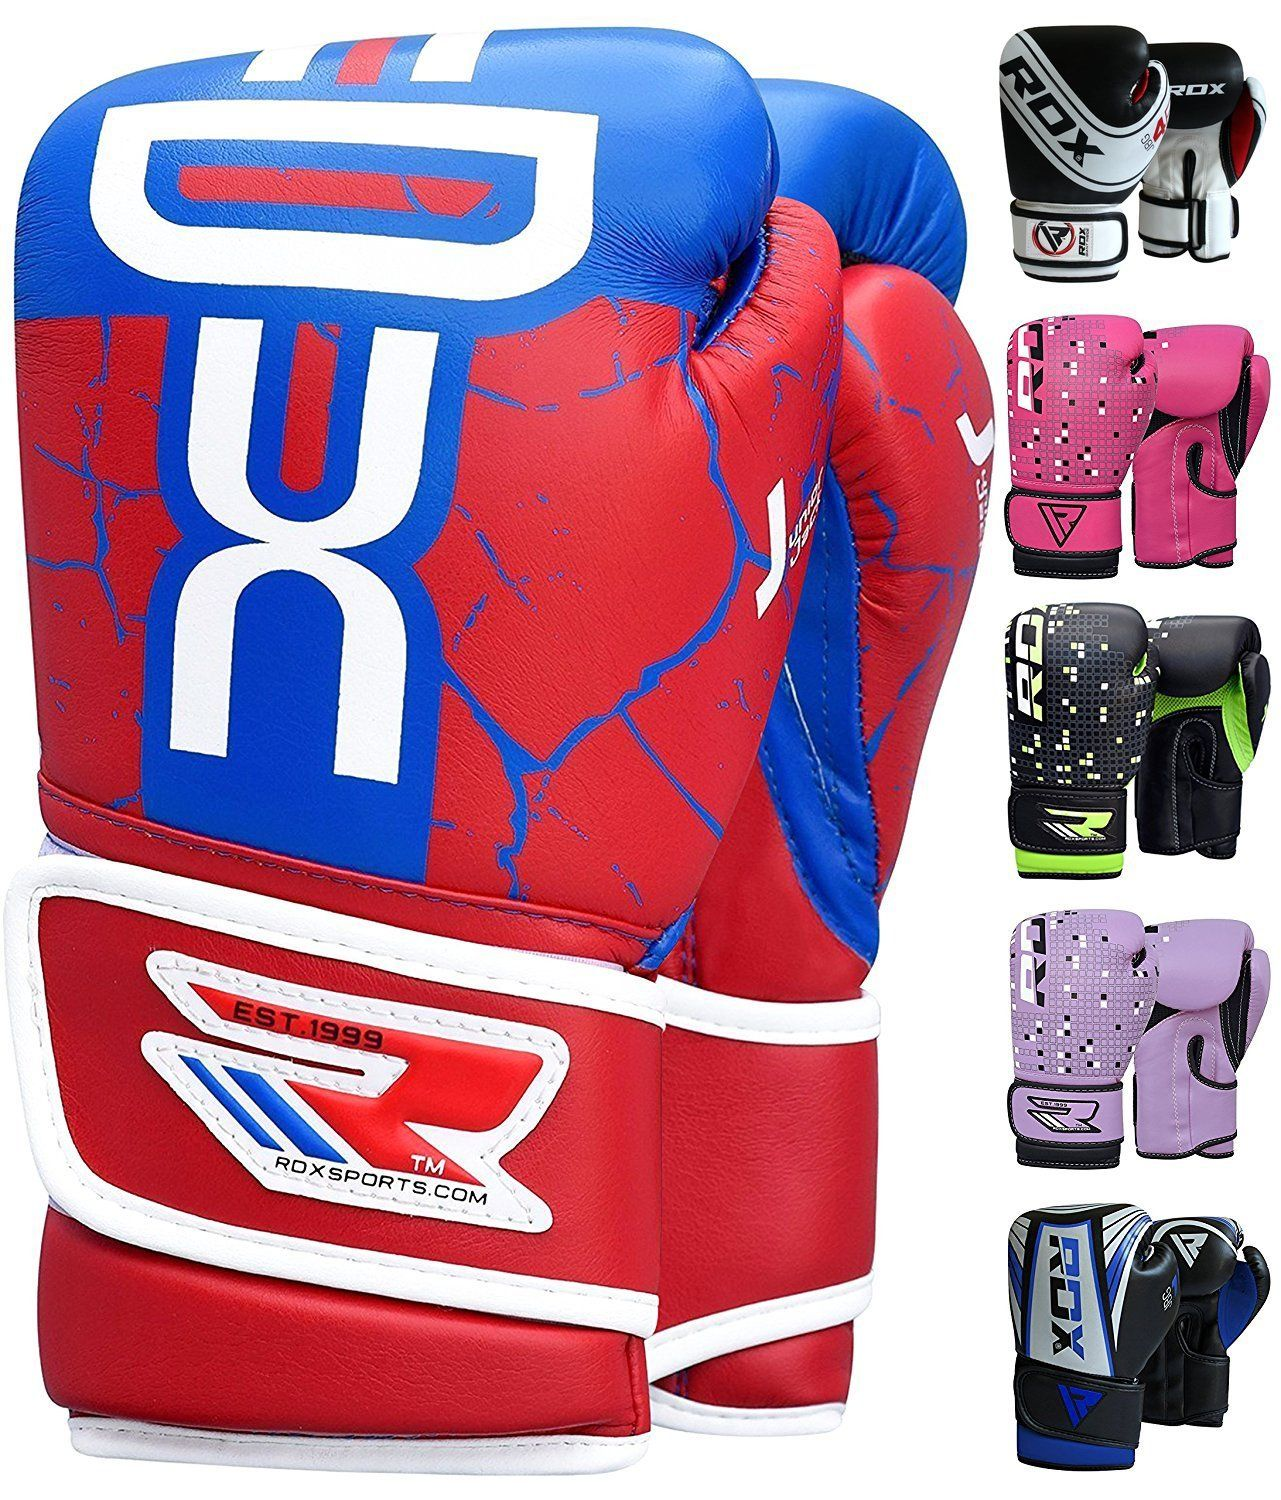 Grappling Dummy and Focus Pads Punching Good for Youth Punch Bag 6oz Mitts for Sparring Maya Hide Leather Junior 4oz Fighting and Kickboxing RDX Kids Boxing Gloves for Training and Muay Thai